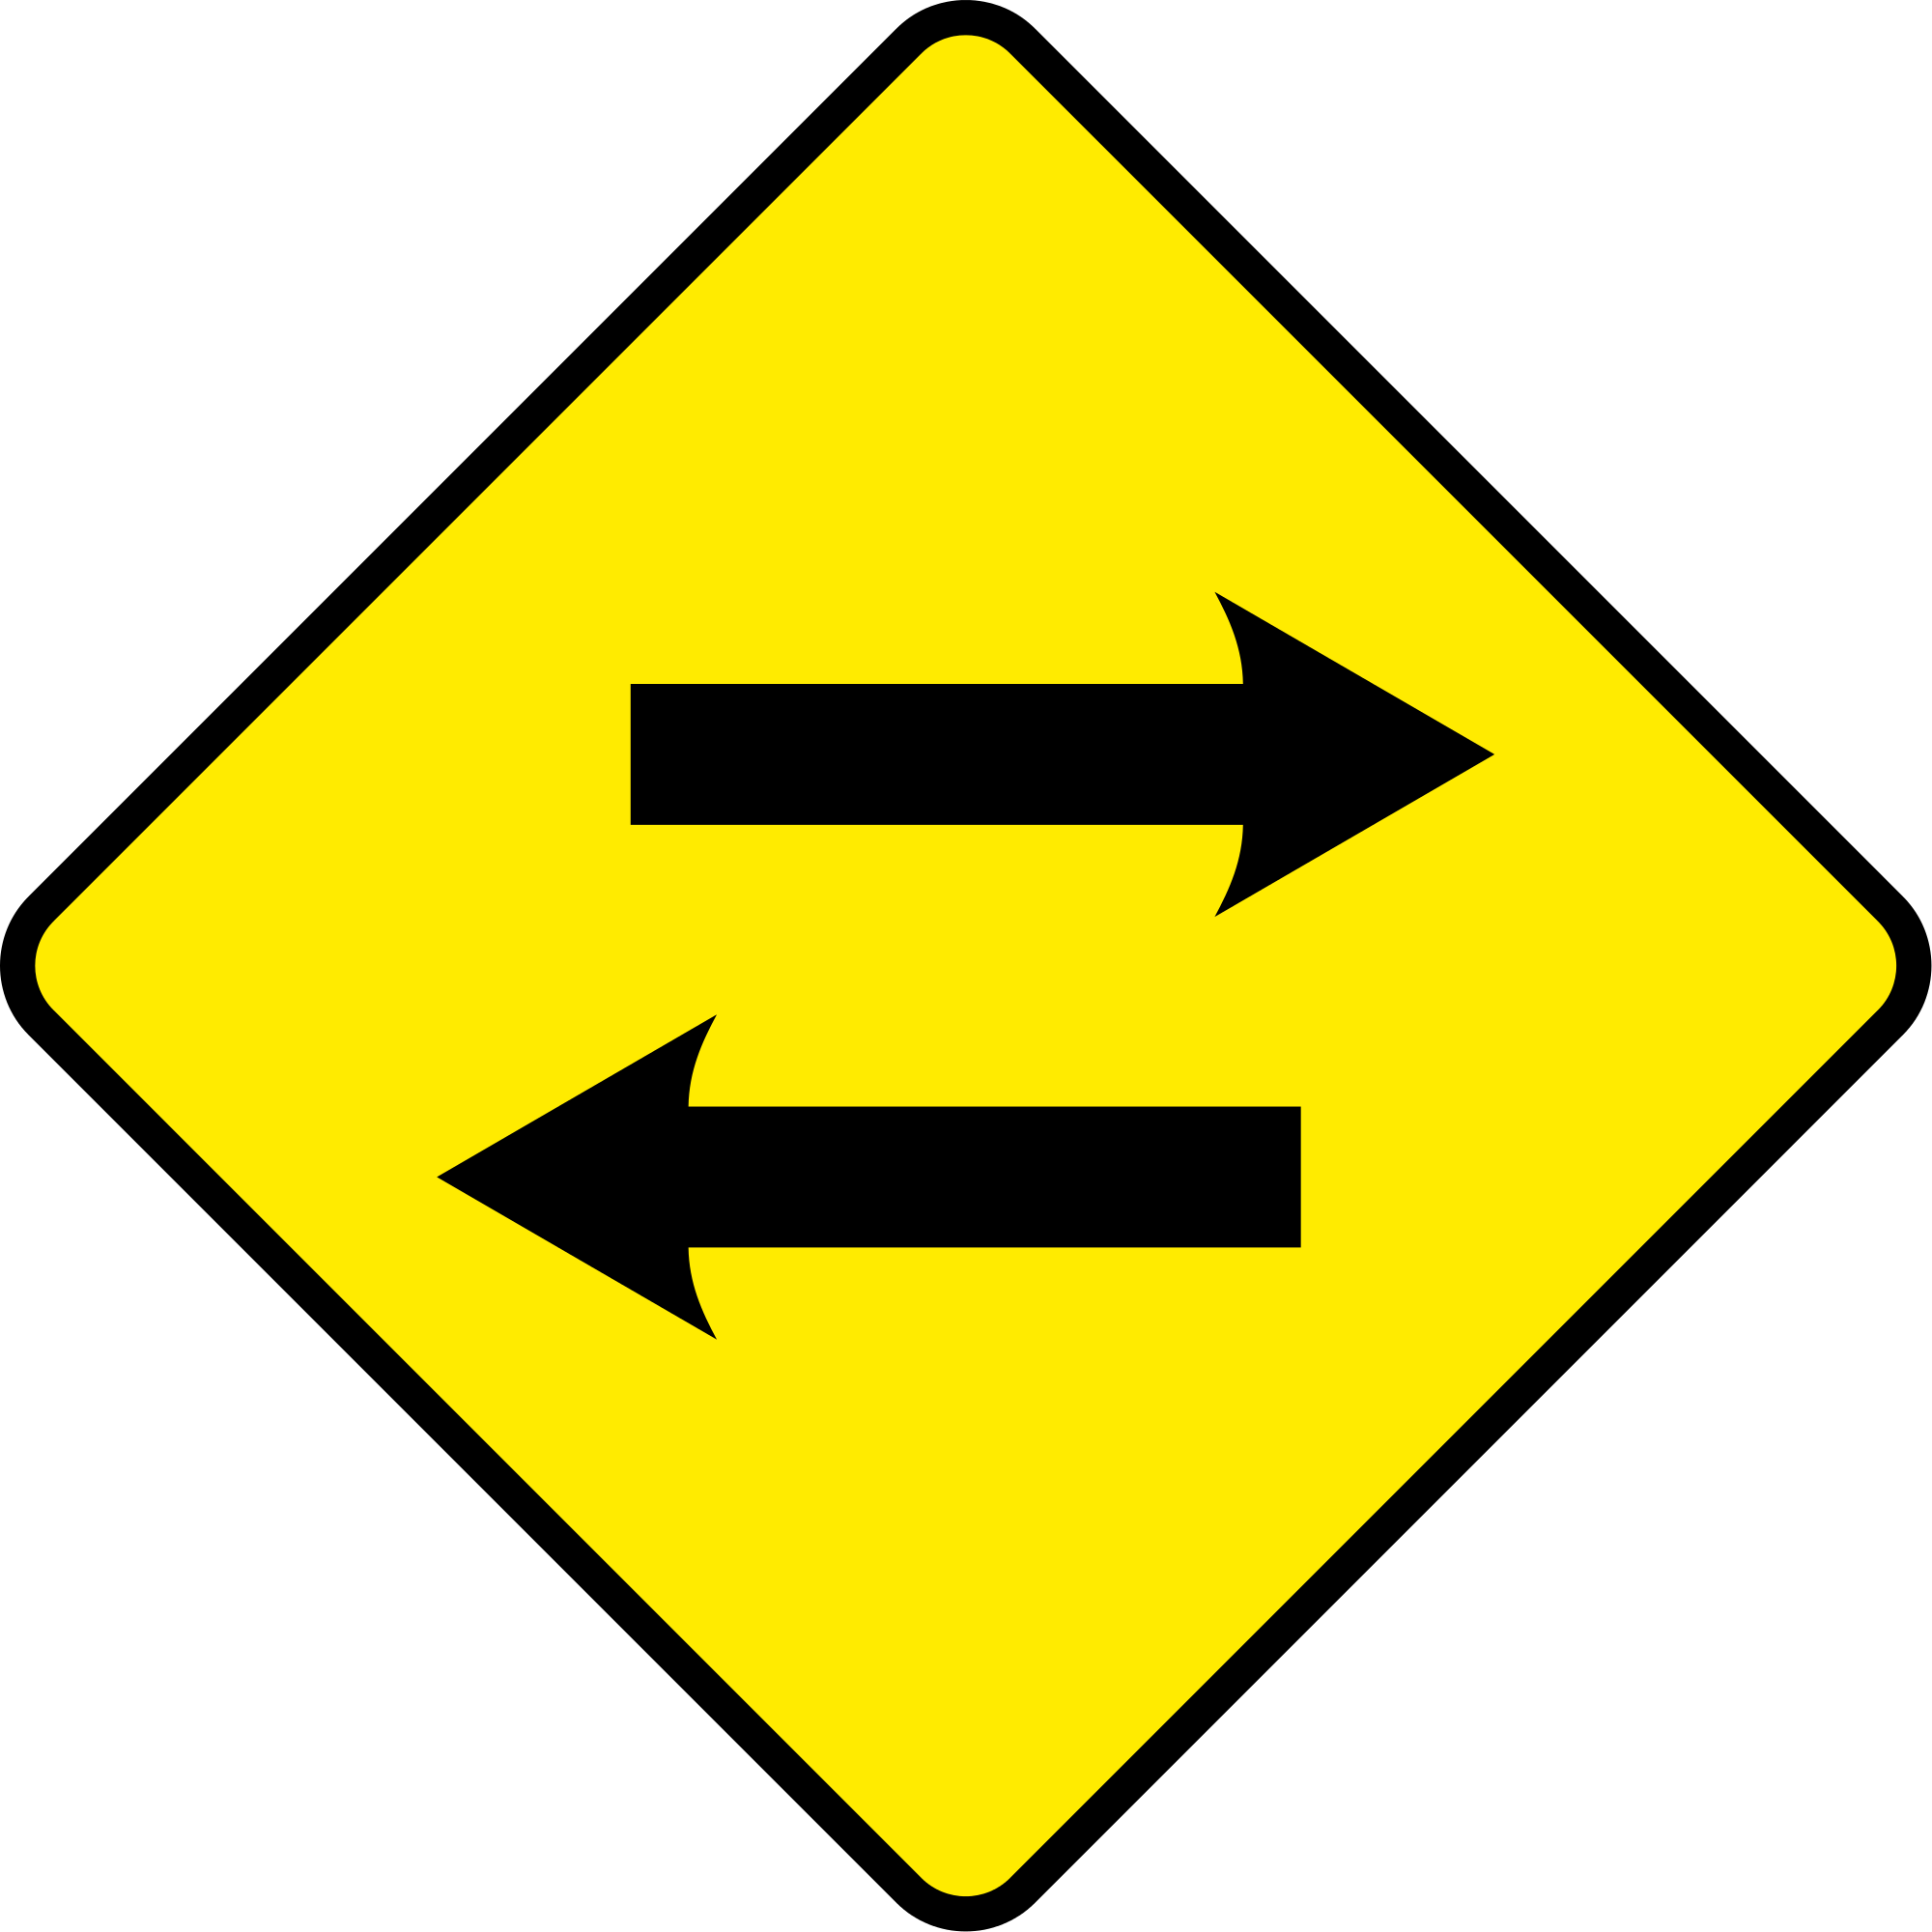 Sign Arrow Png Excellent - 2 Way Traffic Road Sign (2000x2000), Png Download